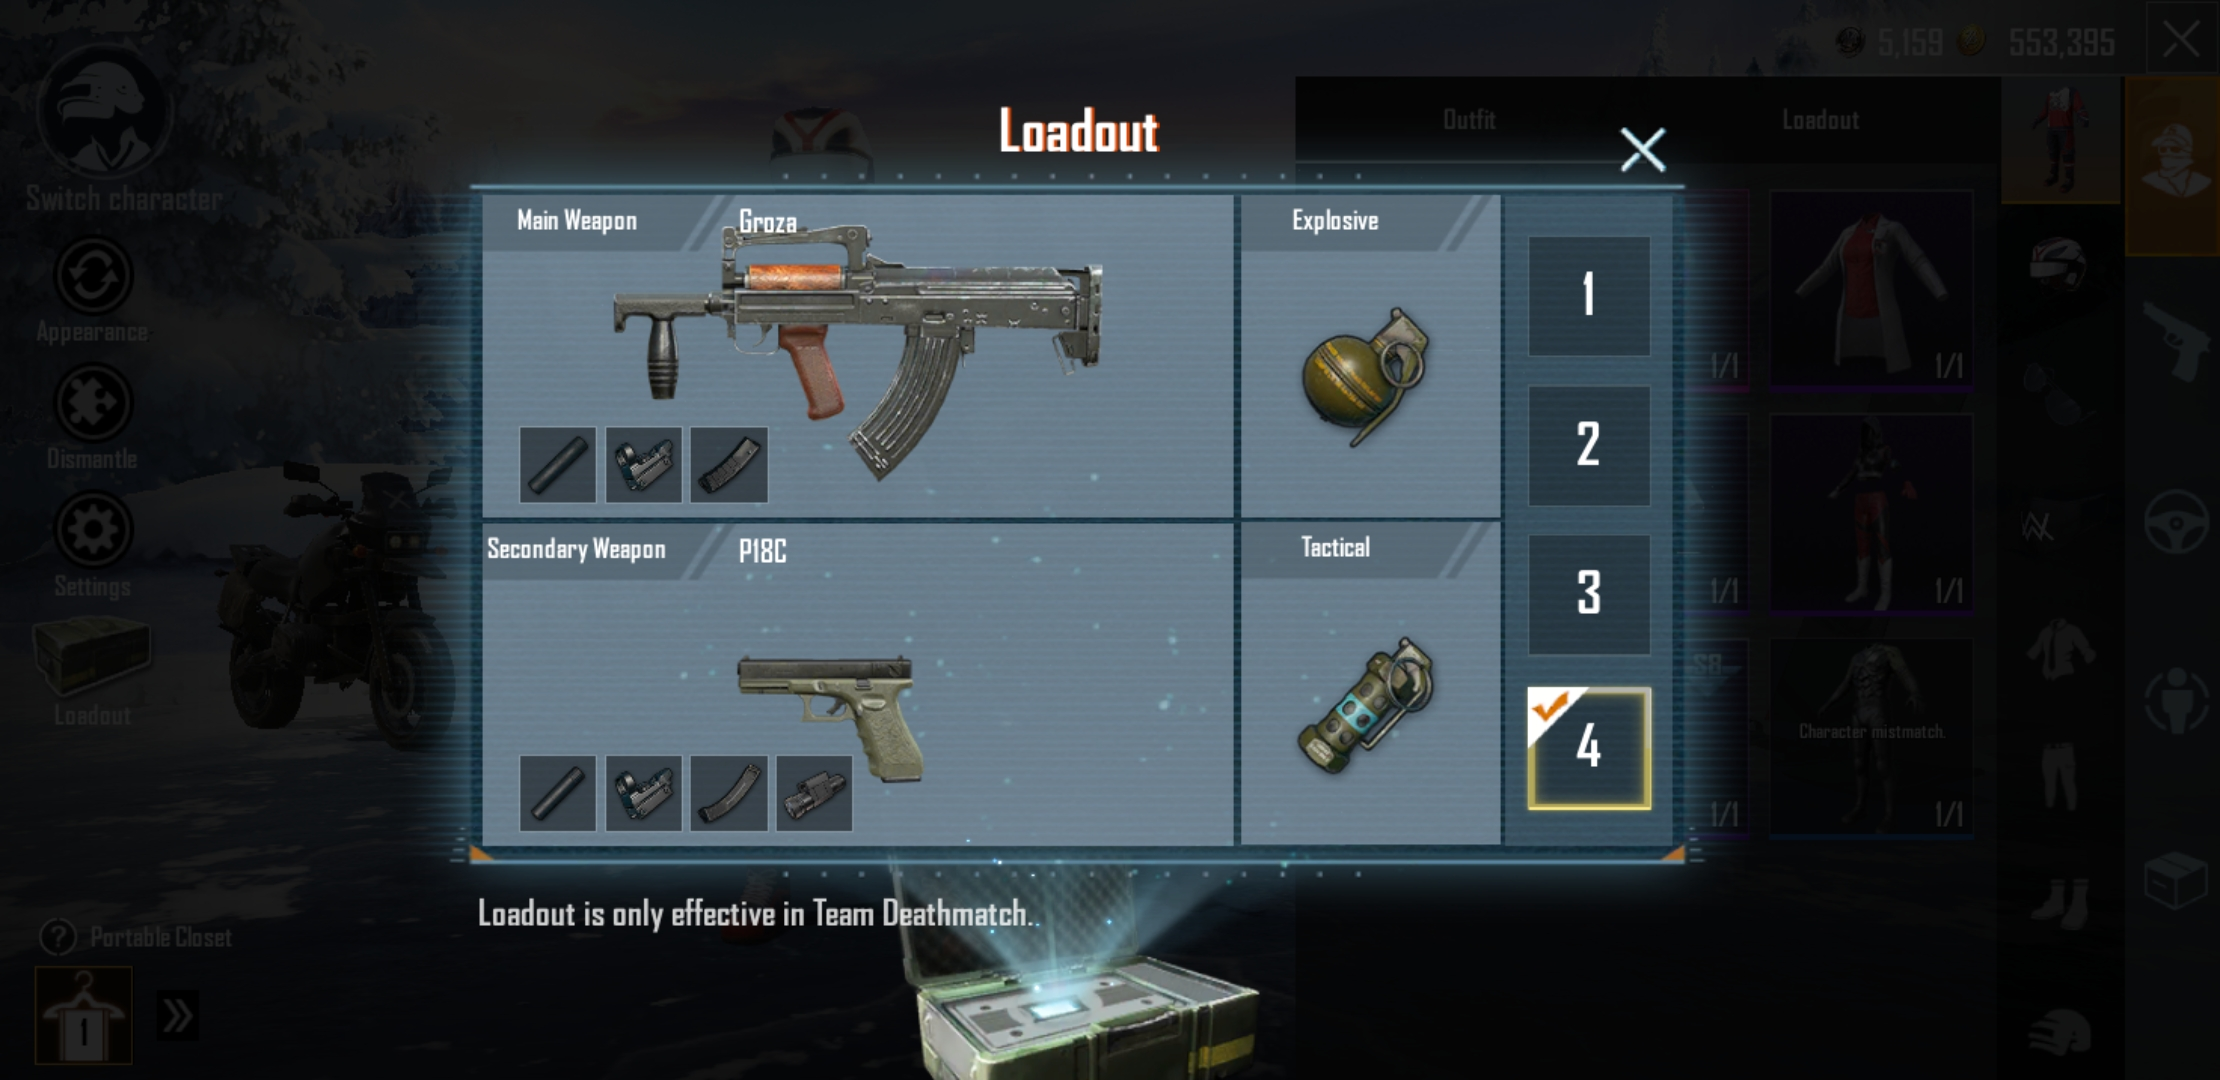 PUBG Mobile's loadout features a main weapon, secondary weapon, explosive, and tactical.